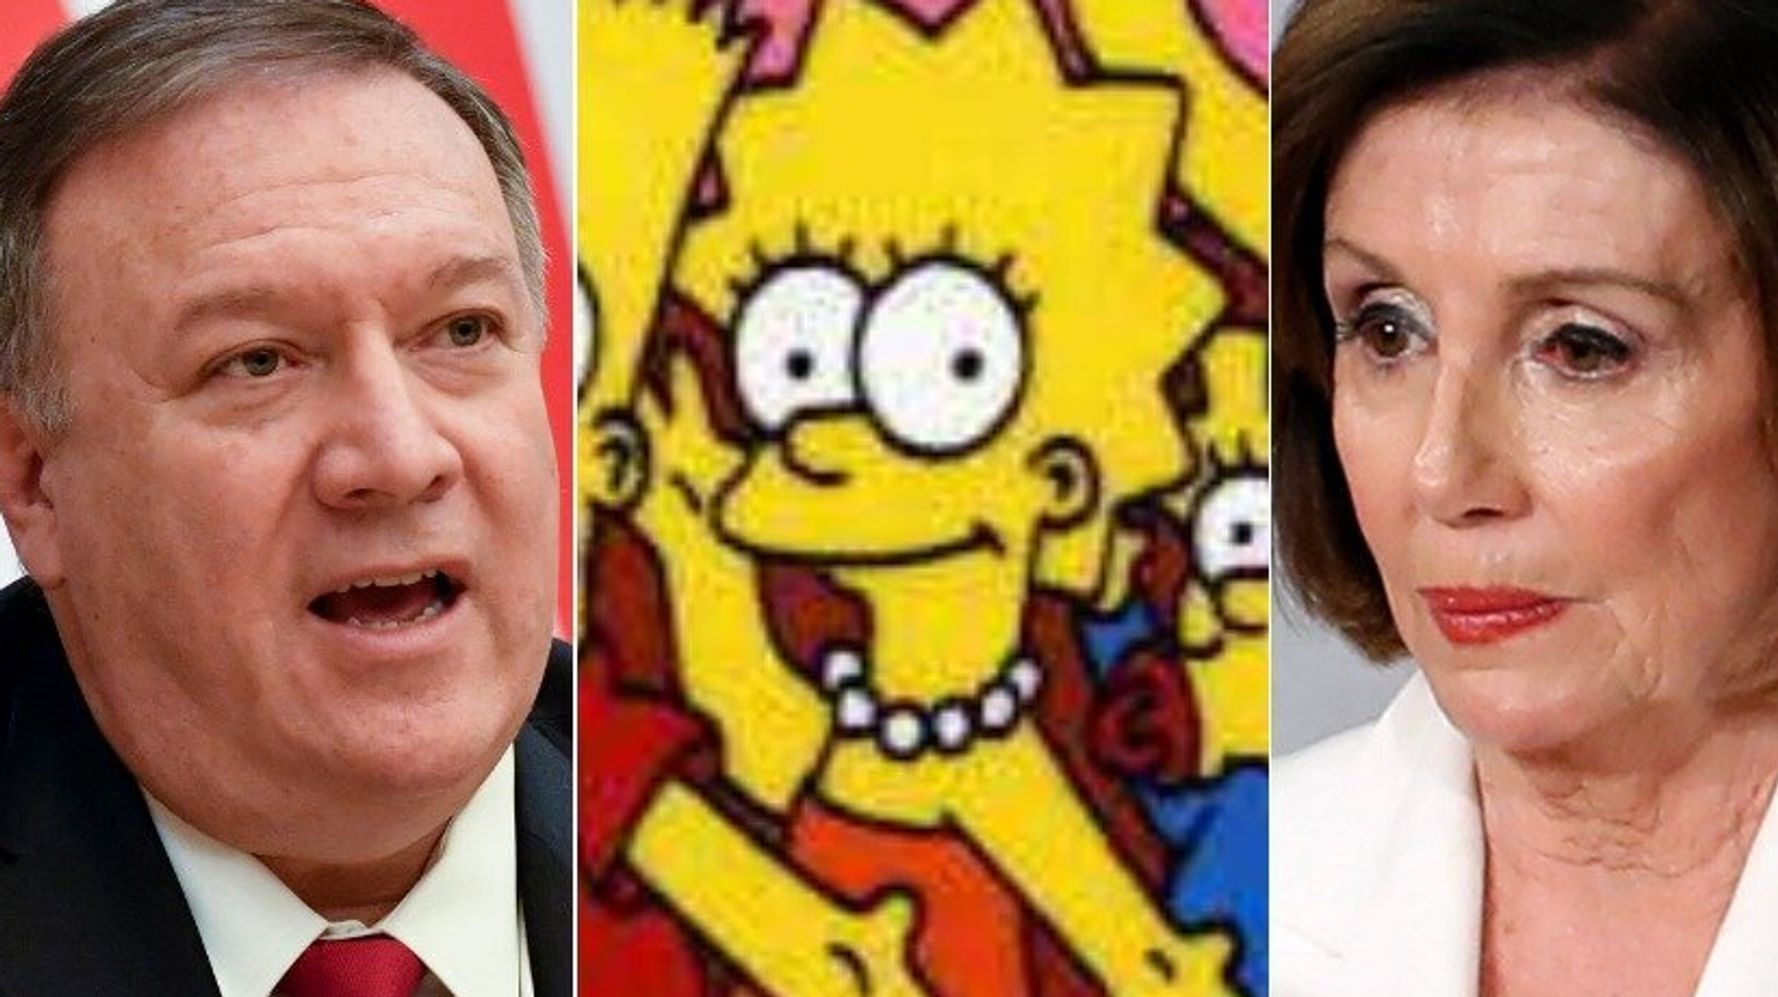 Westlake Legal Group 5e3ab8082700008f0338b454 Pompeo Spectacularly Self-Owns With Attempted 'Simpsons' Troll Of Pelosi